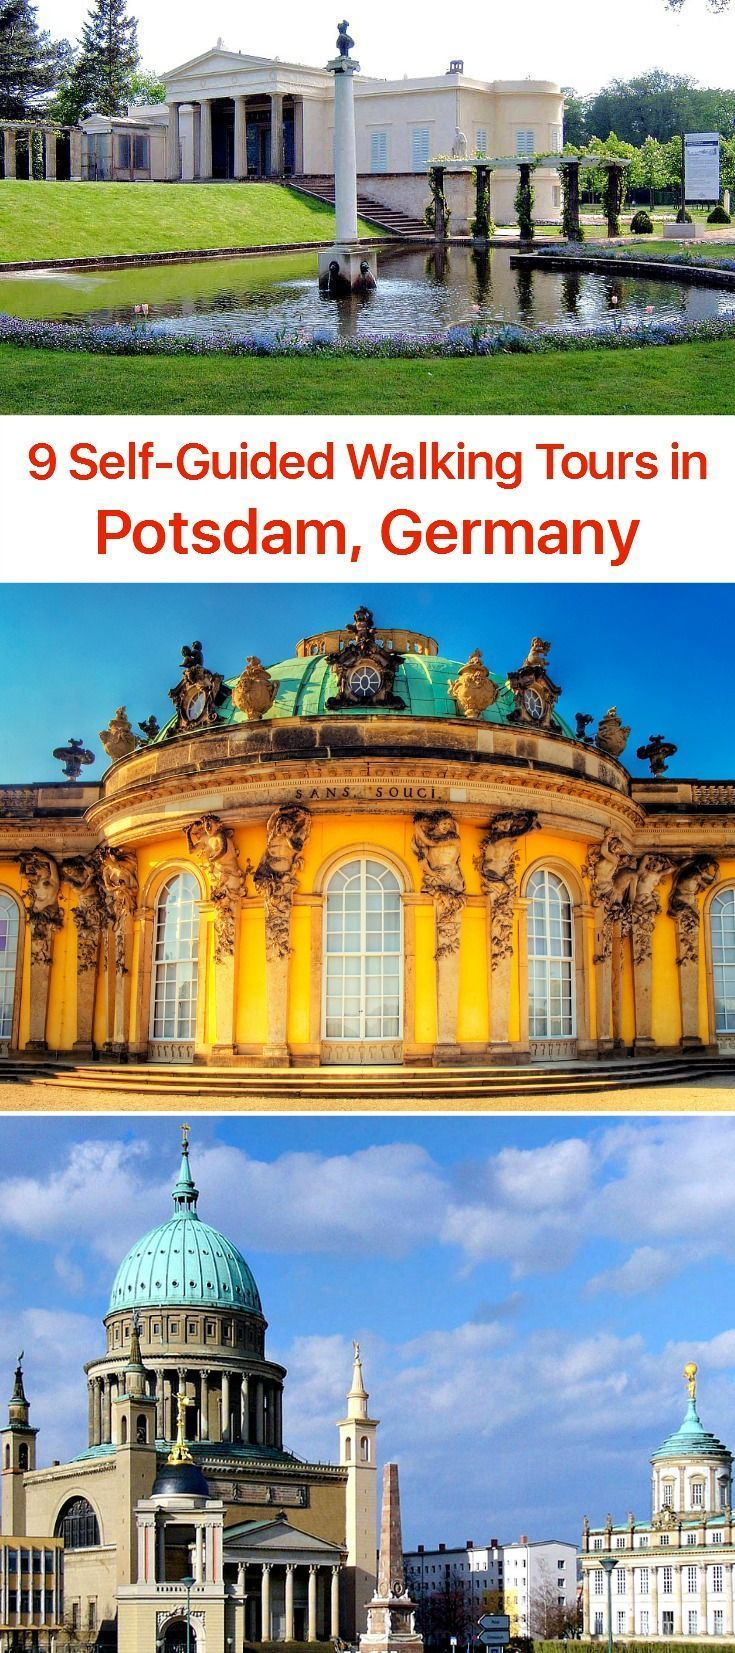 Once the seat of the Prussian kings and later of the German Kaiser, Potsdam earned its place in the modern history as the host of the Potsdam Conference, during which the winning Allies decided the fate of the post-war world following the end of WWII. The actual place of the conference - the Cecilienhof palace – complete with other local attractions, make the city a largest World Heritage Site in Germany.